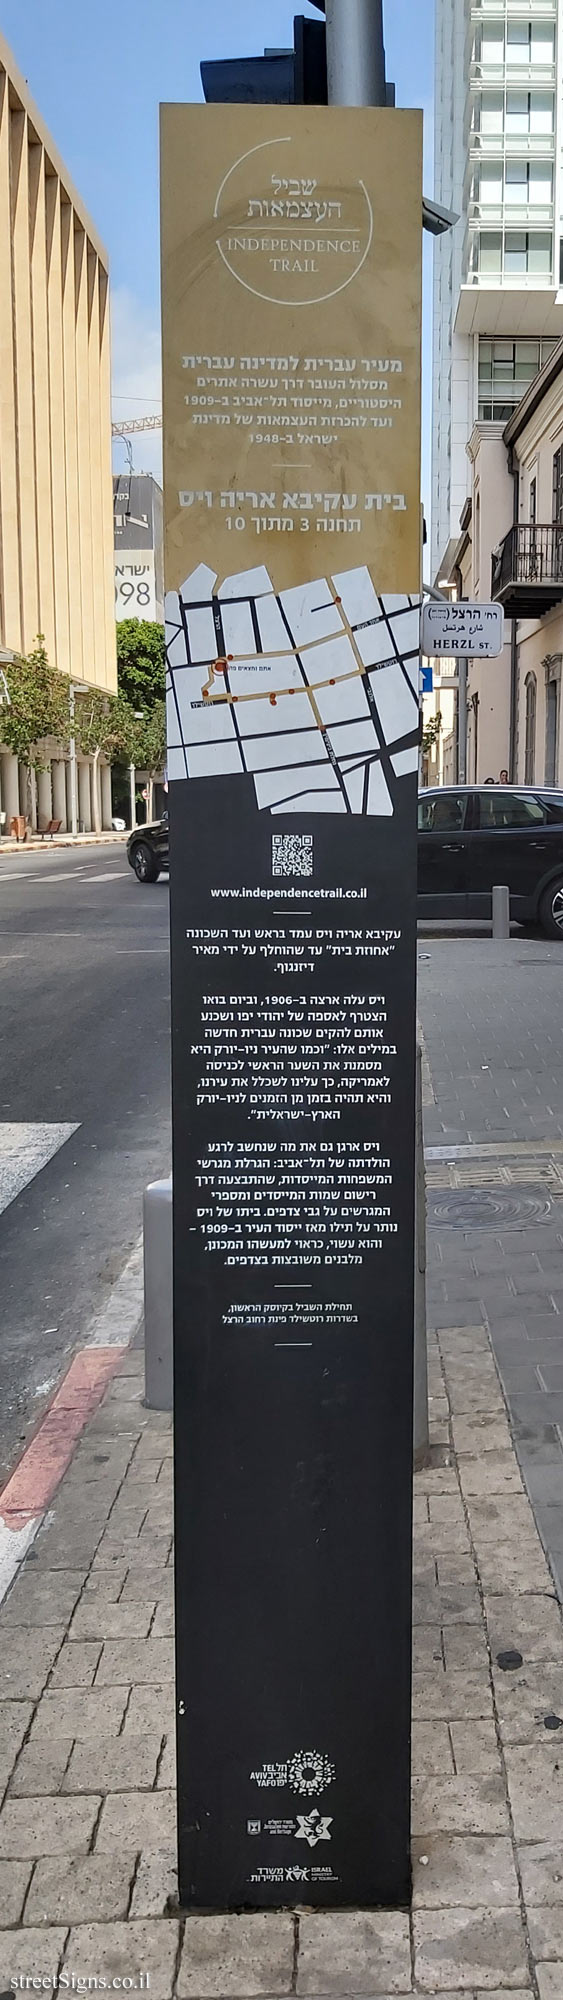 Tel Aviv - Independence Trail - Akiva Arieh Weiss House - Information